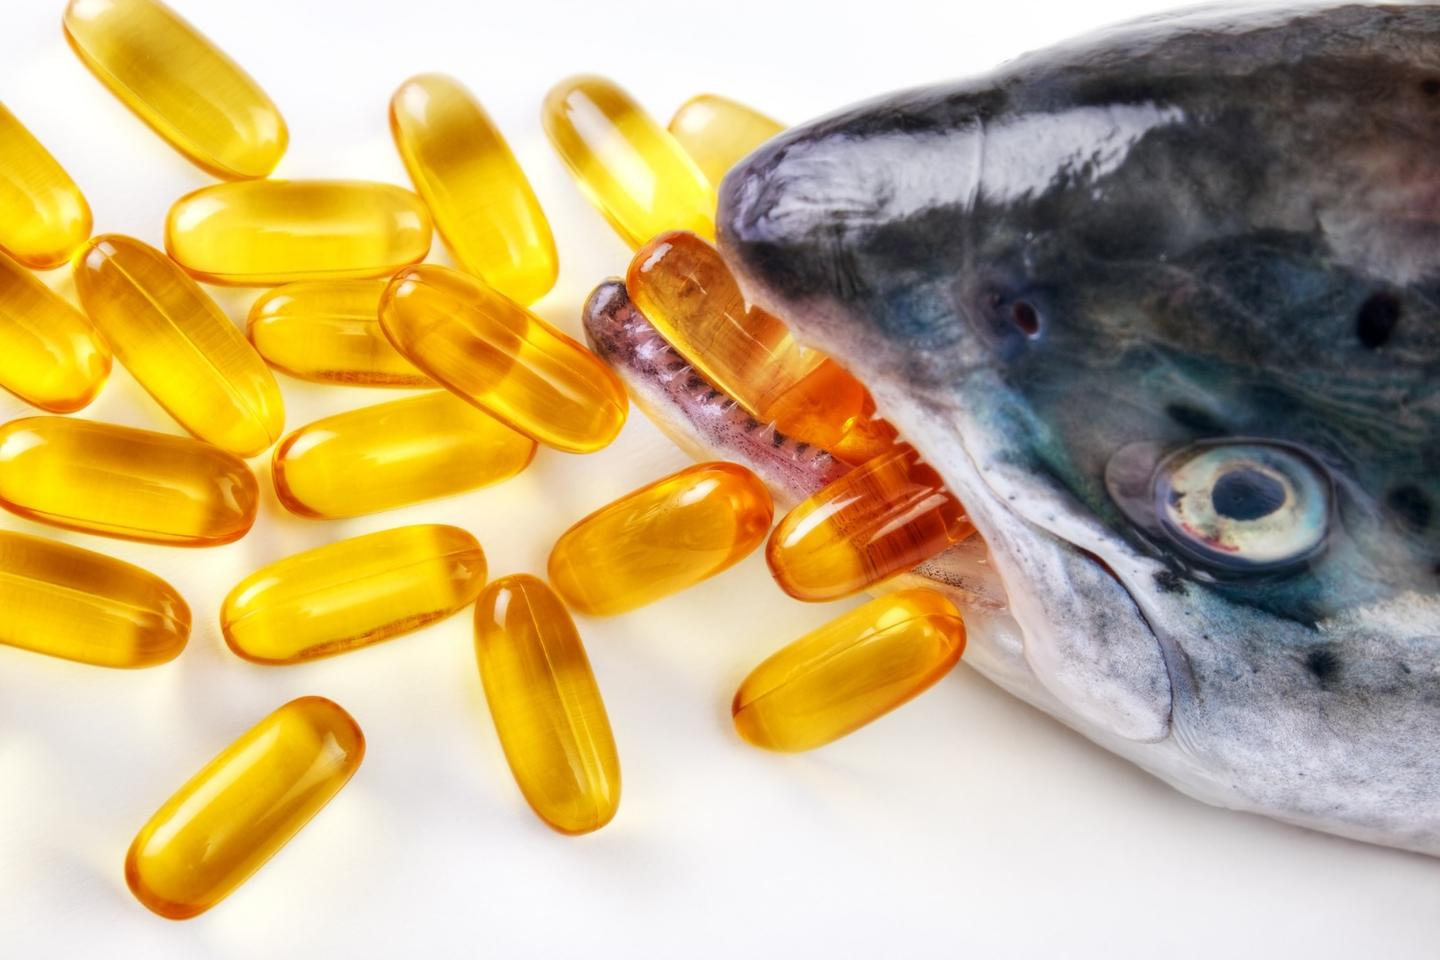 A massive study has found omega-3 supplements confer little to no beneficial protective effect against heart disease, stroke or general mortality